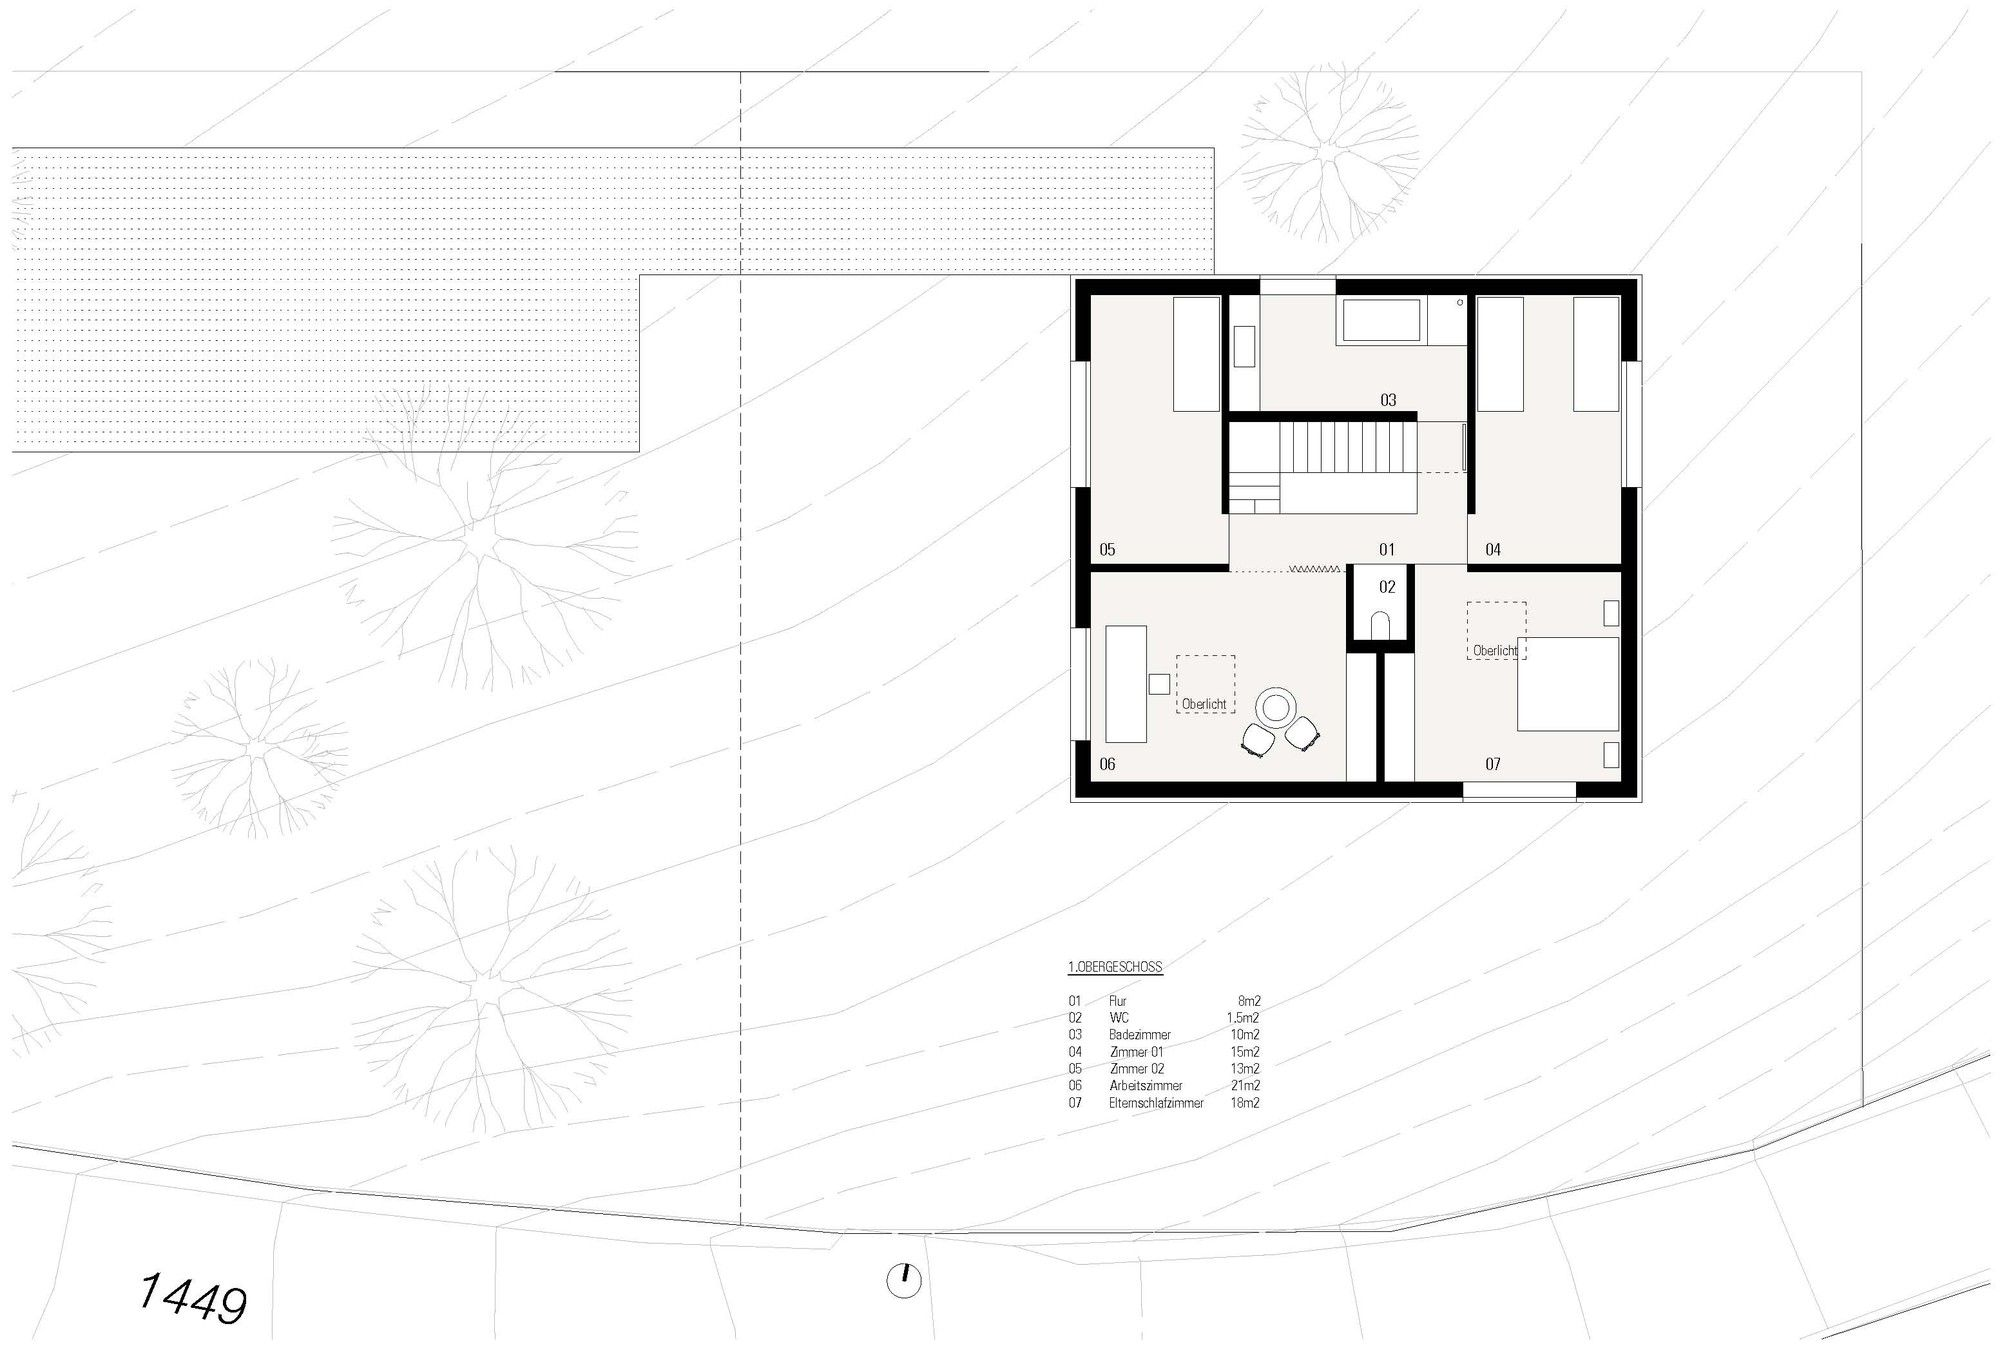 Gallery Of Haus Fontanella Bernardo Bader Architects 13 Architect House Drawing Modern House Plans